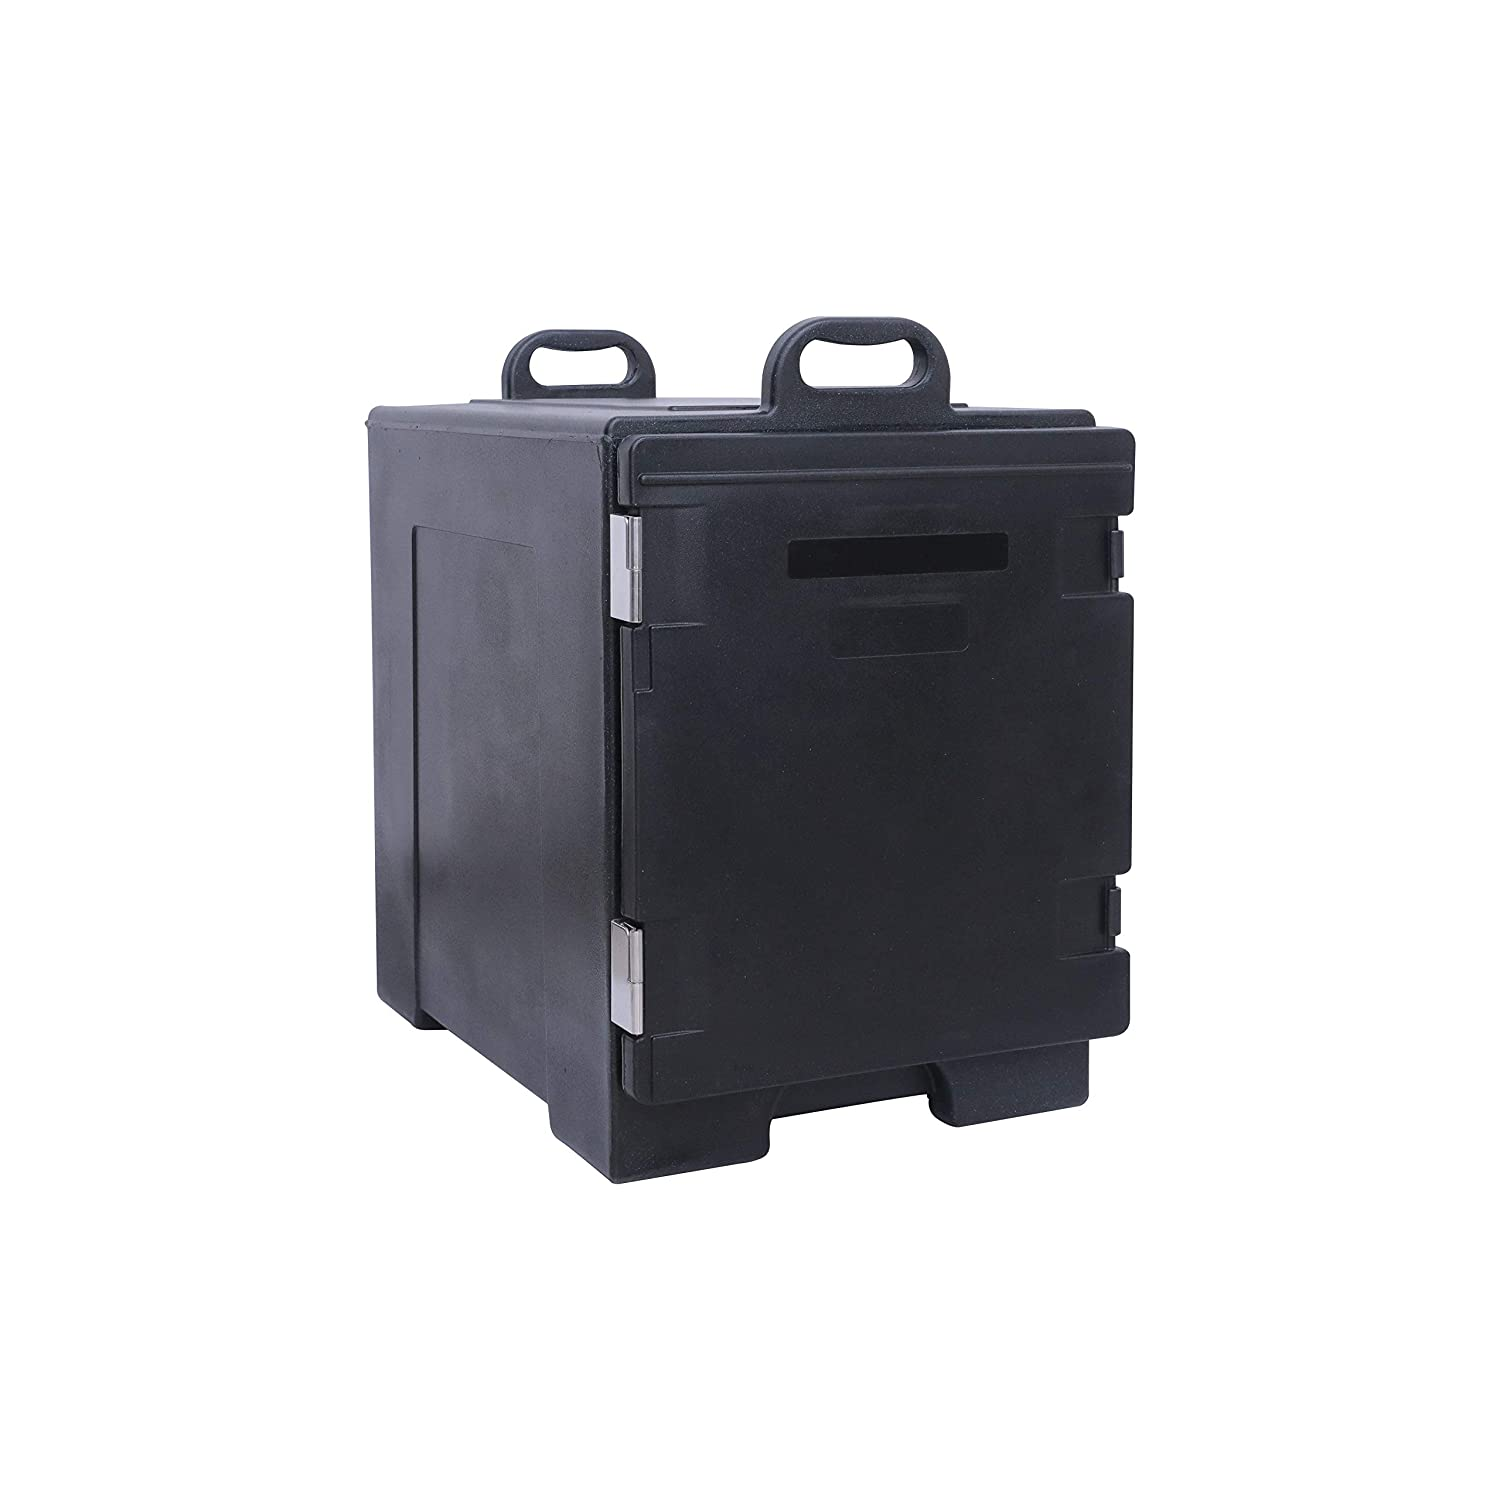 Front-Loading Insulated Food Pan Carrier, 81 Quart Capacity, 5 Full-Size Pan,Food-Grade LLDPE Material, Portable Food Warmer Transporter